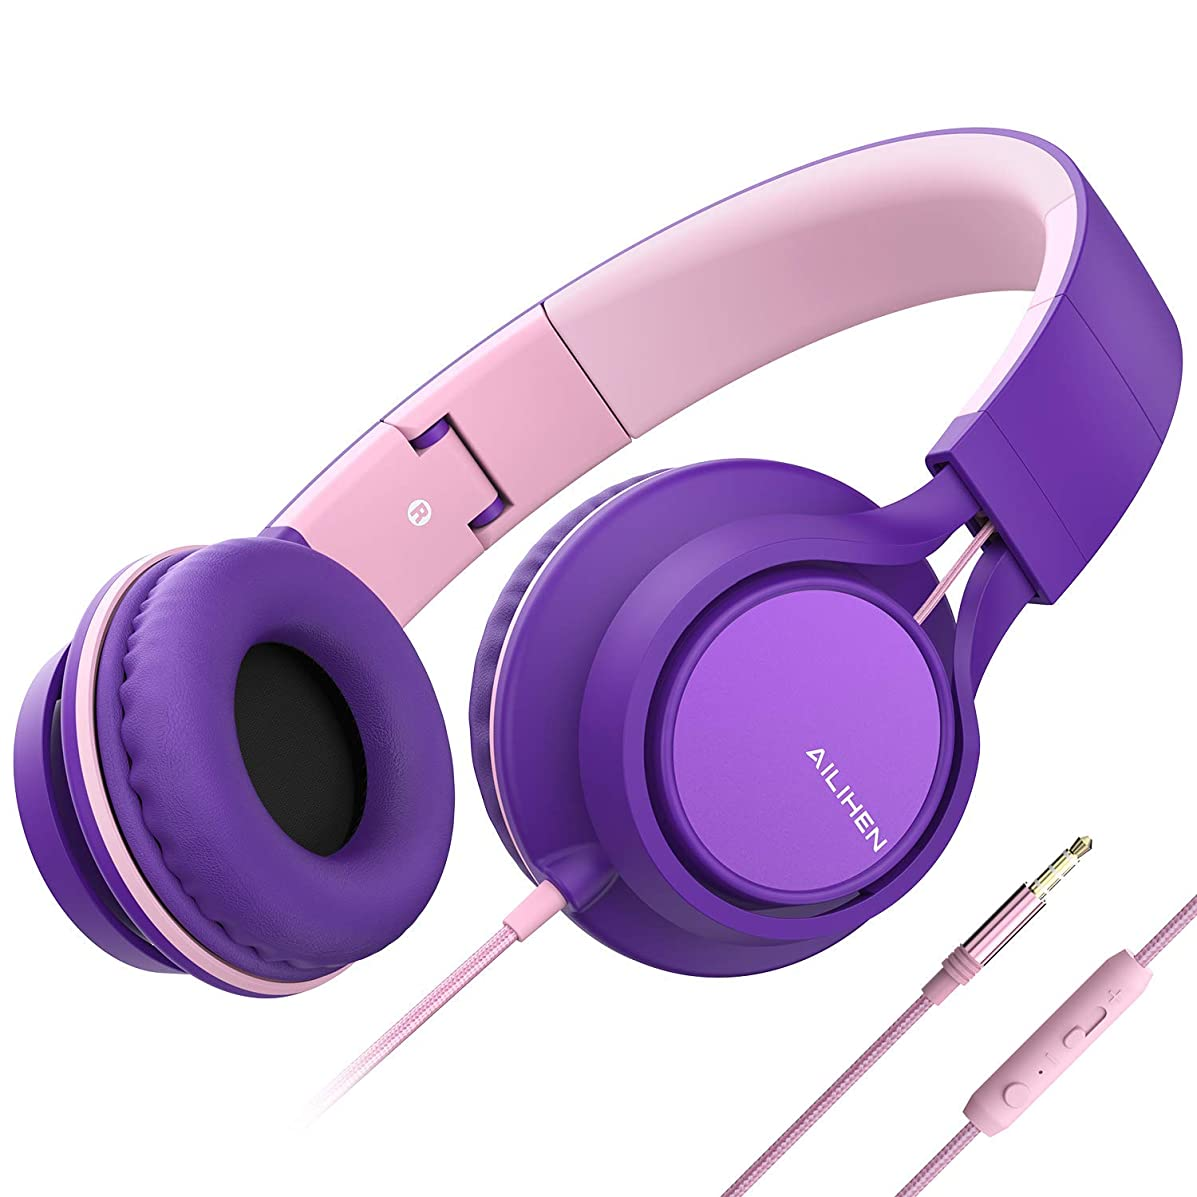 AILIHEN C8 (Upgraded) Headphones with Microphone and Volume Control Folding Lightweight Headset for Cellphones Tablets Smartphones Laptop Computer PC Mp3/4 (Purple Pink)